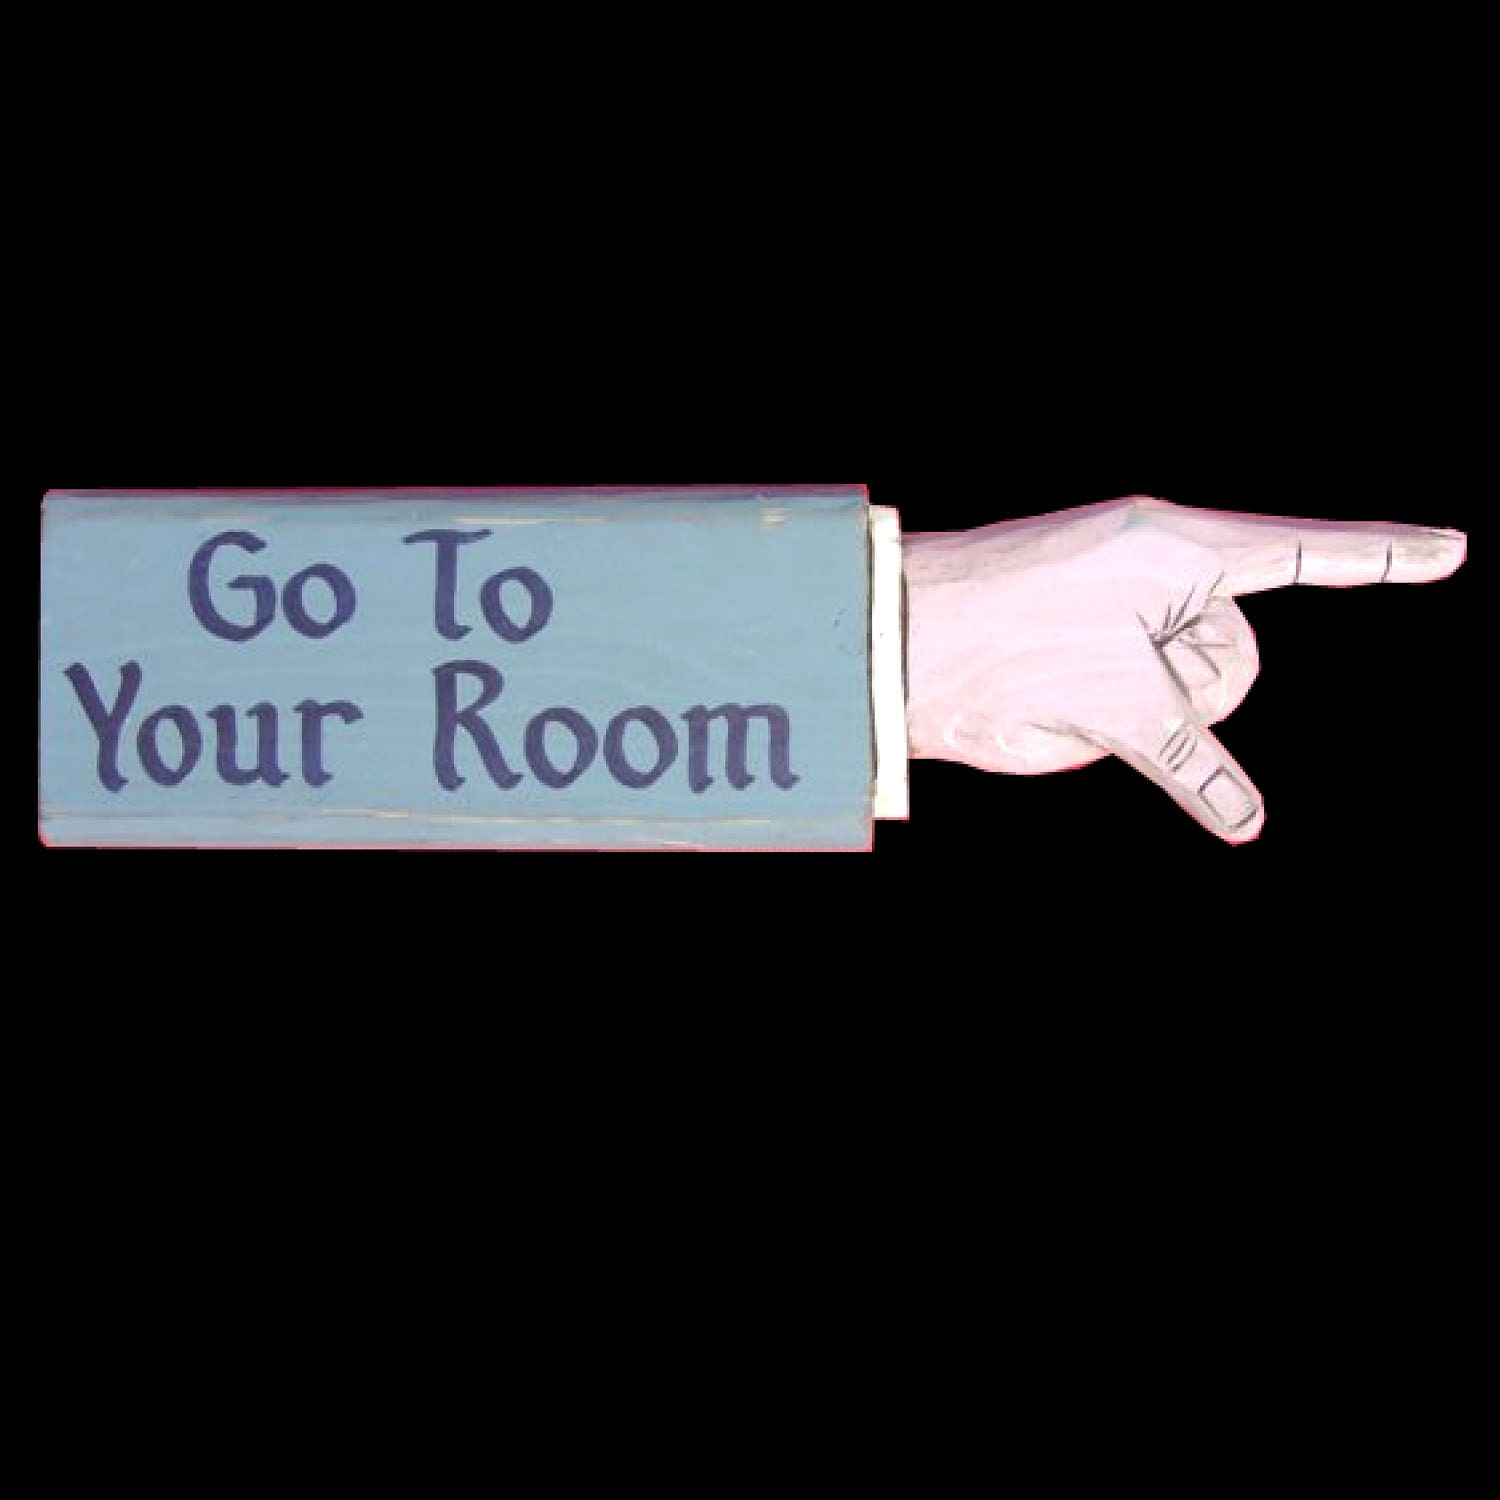 Go To Your Room Pointing Hand - MorningStarDesign